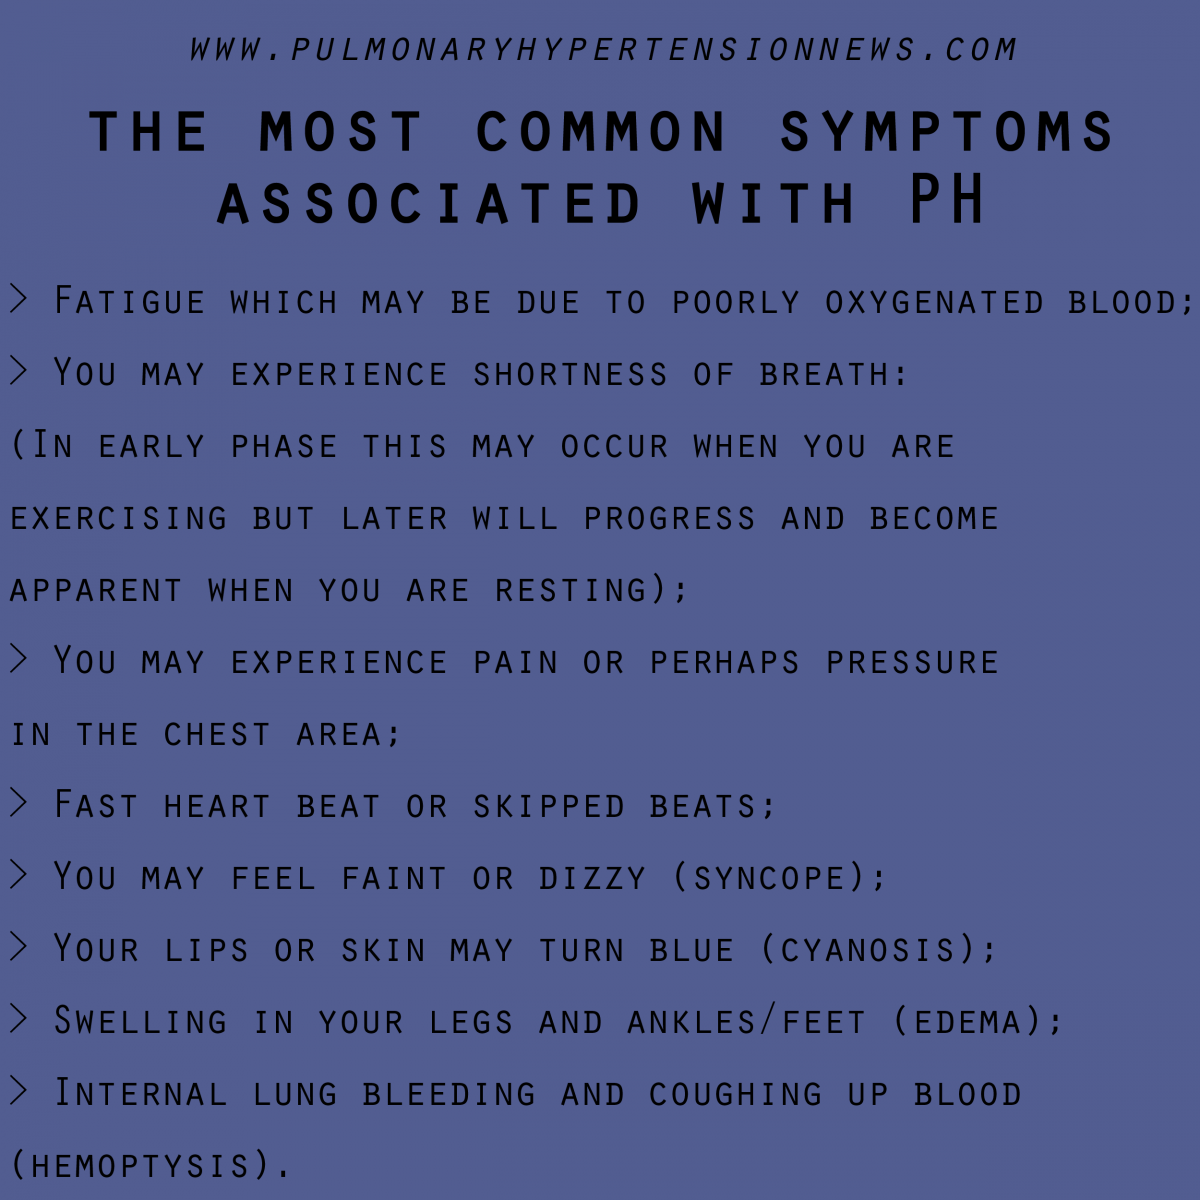 The Most Common Symptoms Associated With Pulmonary Hypertension